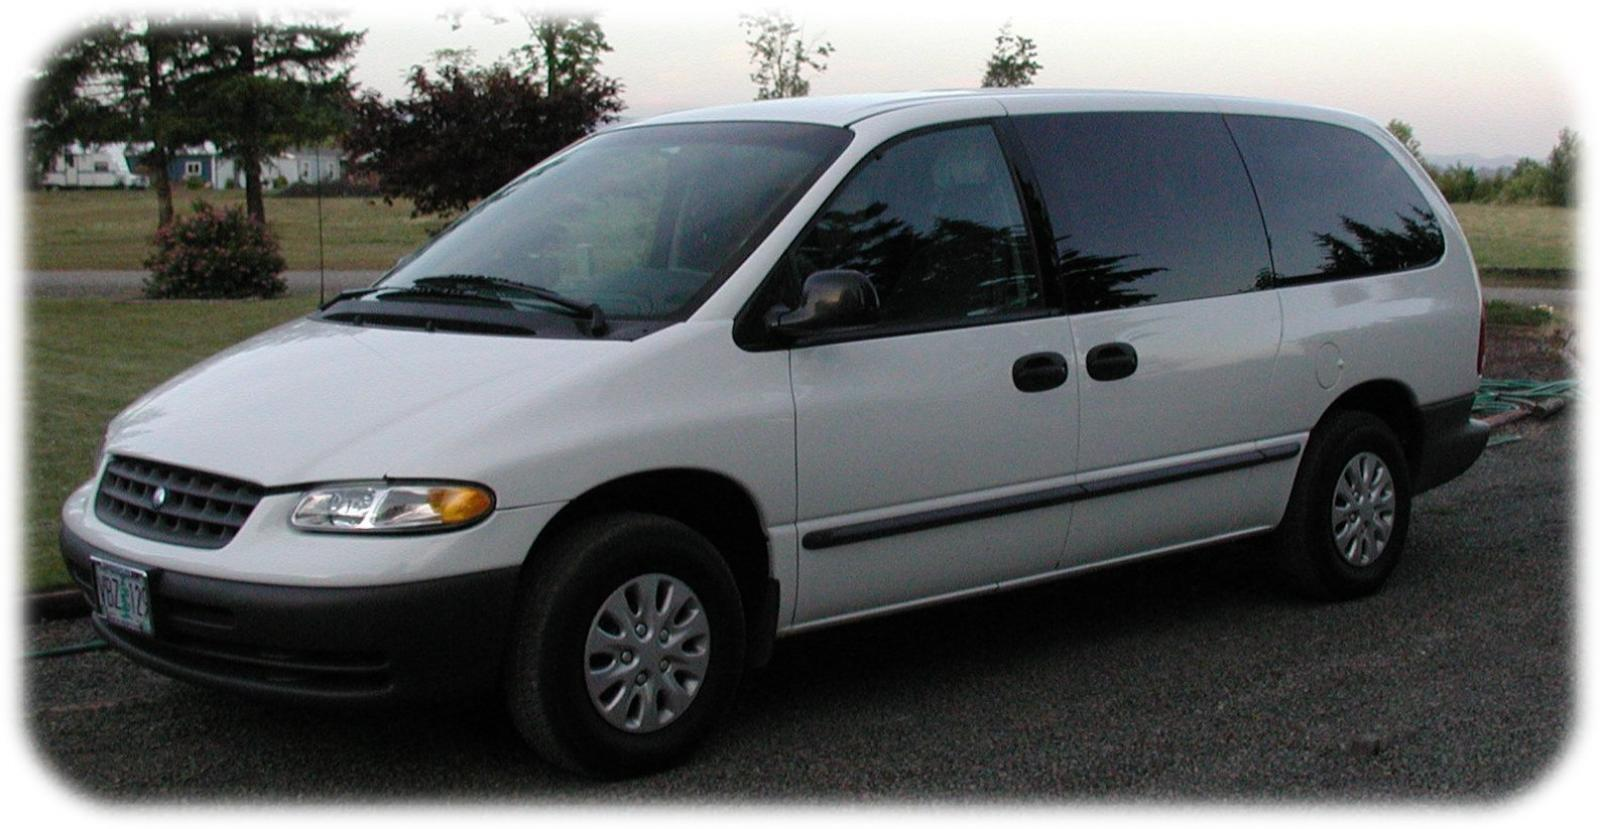 Plymouth voyager photo - 8